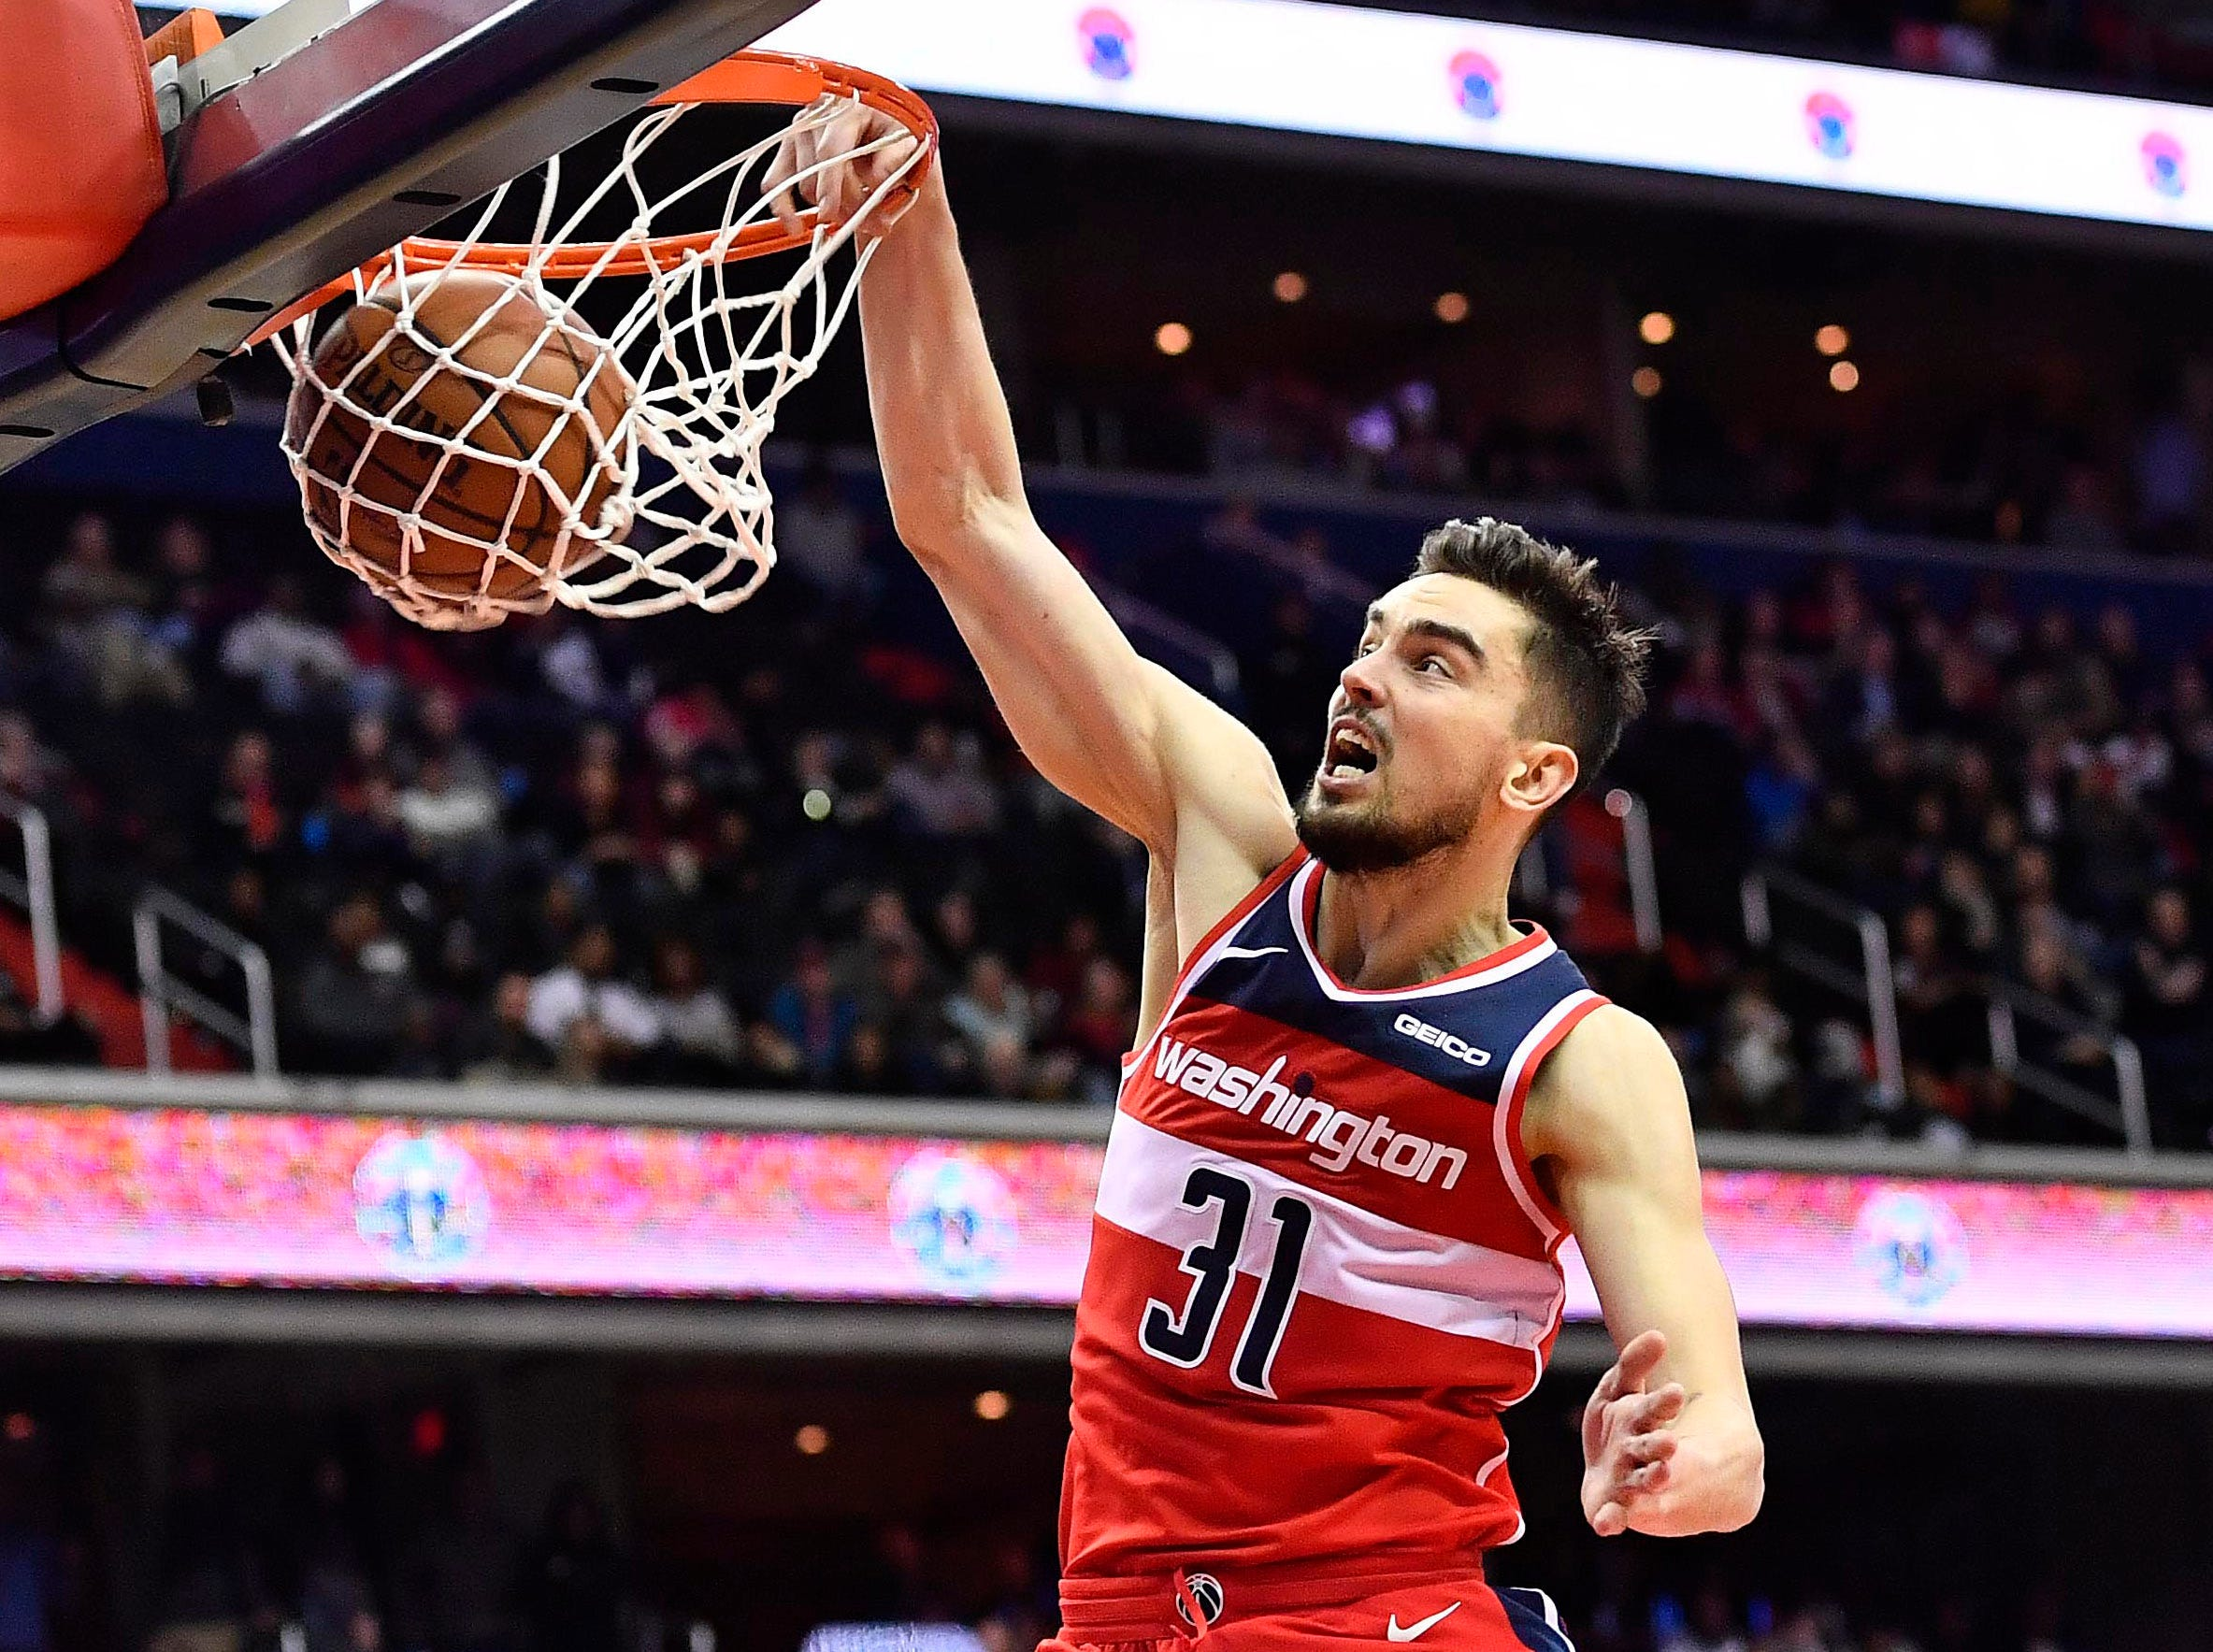 Feb. 8: Washington Wizards guard Tomas Satoransky dunks the ball against the Cleveland Cavaliers during the second half at Capital One Arena.